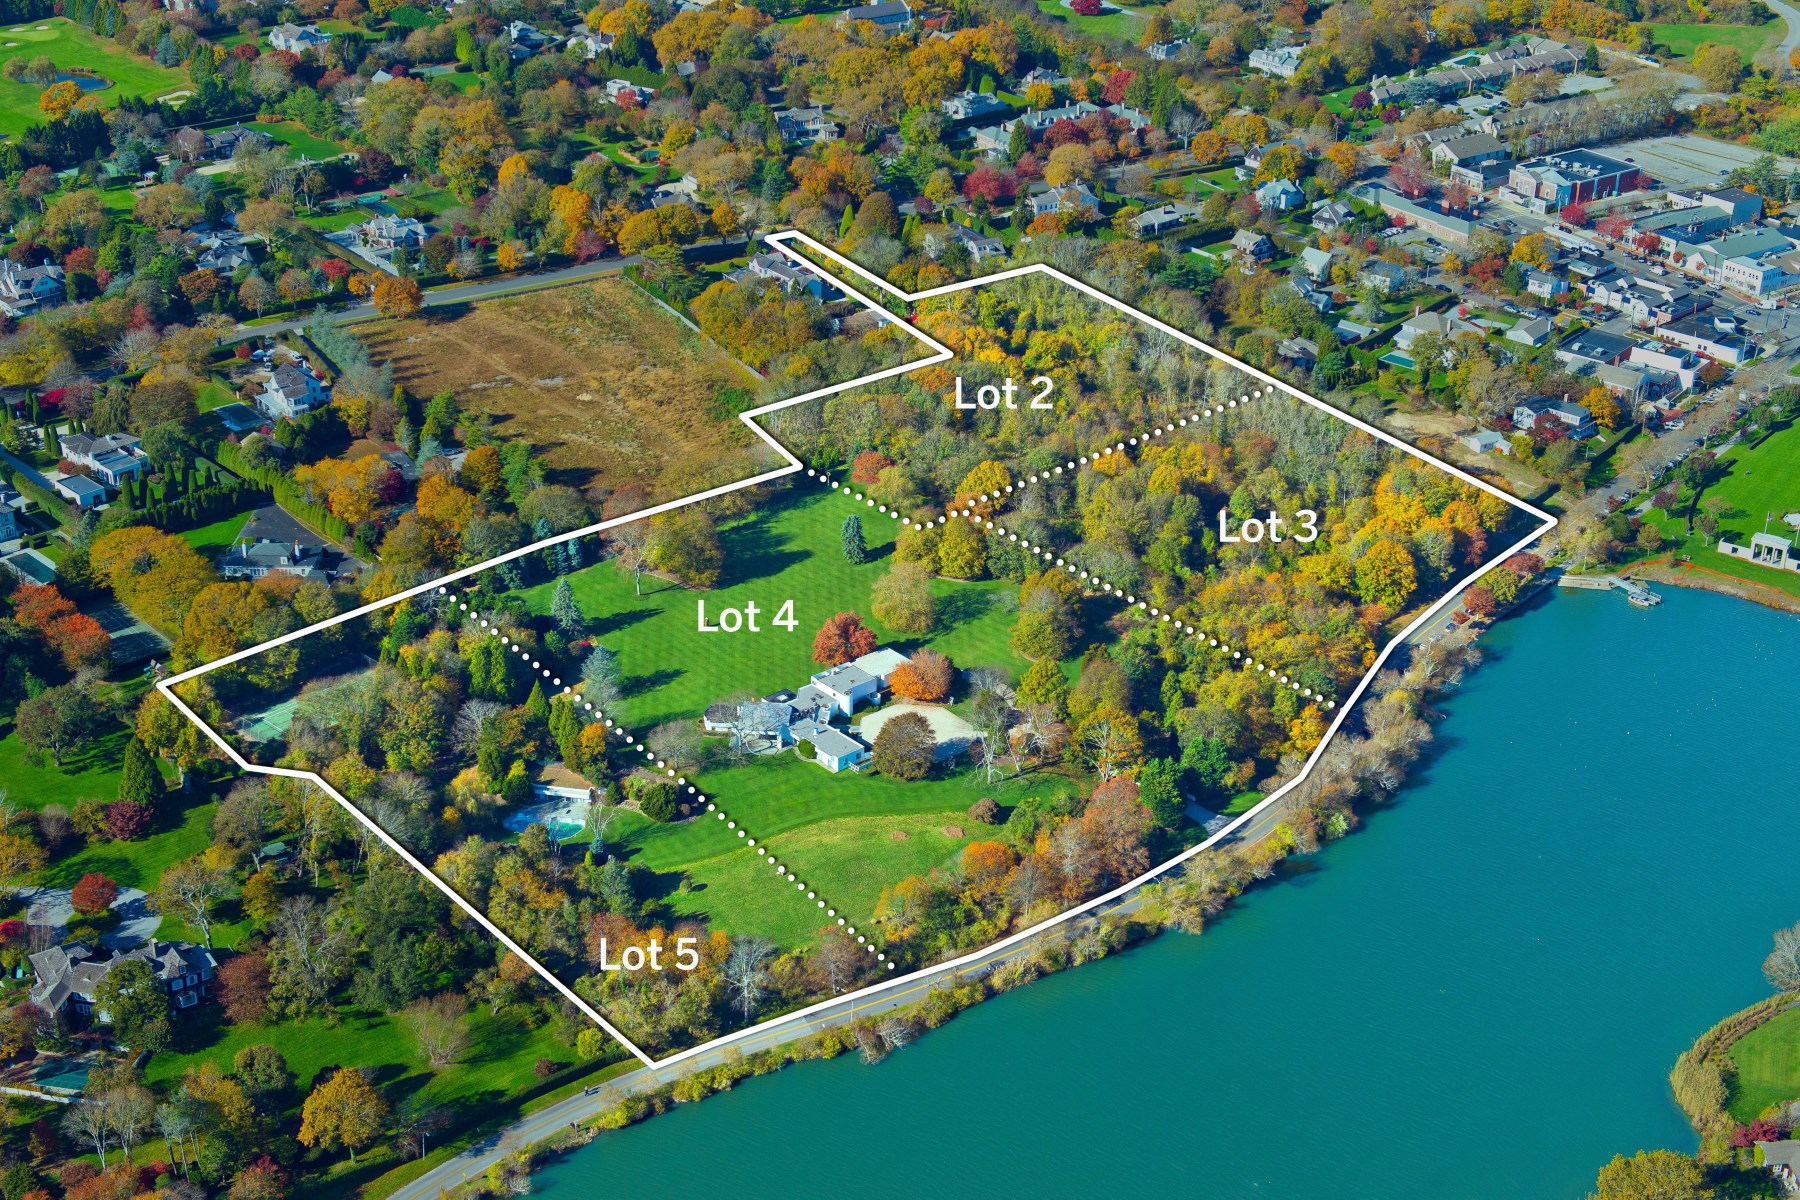 Single Family Home for Sale at Spectacular Waterviews on Lake Agawam 137,153 Pond Lane, Lot 4 & 5 Southampton, New York 11968 United States